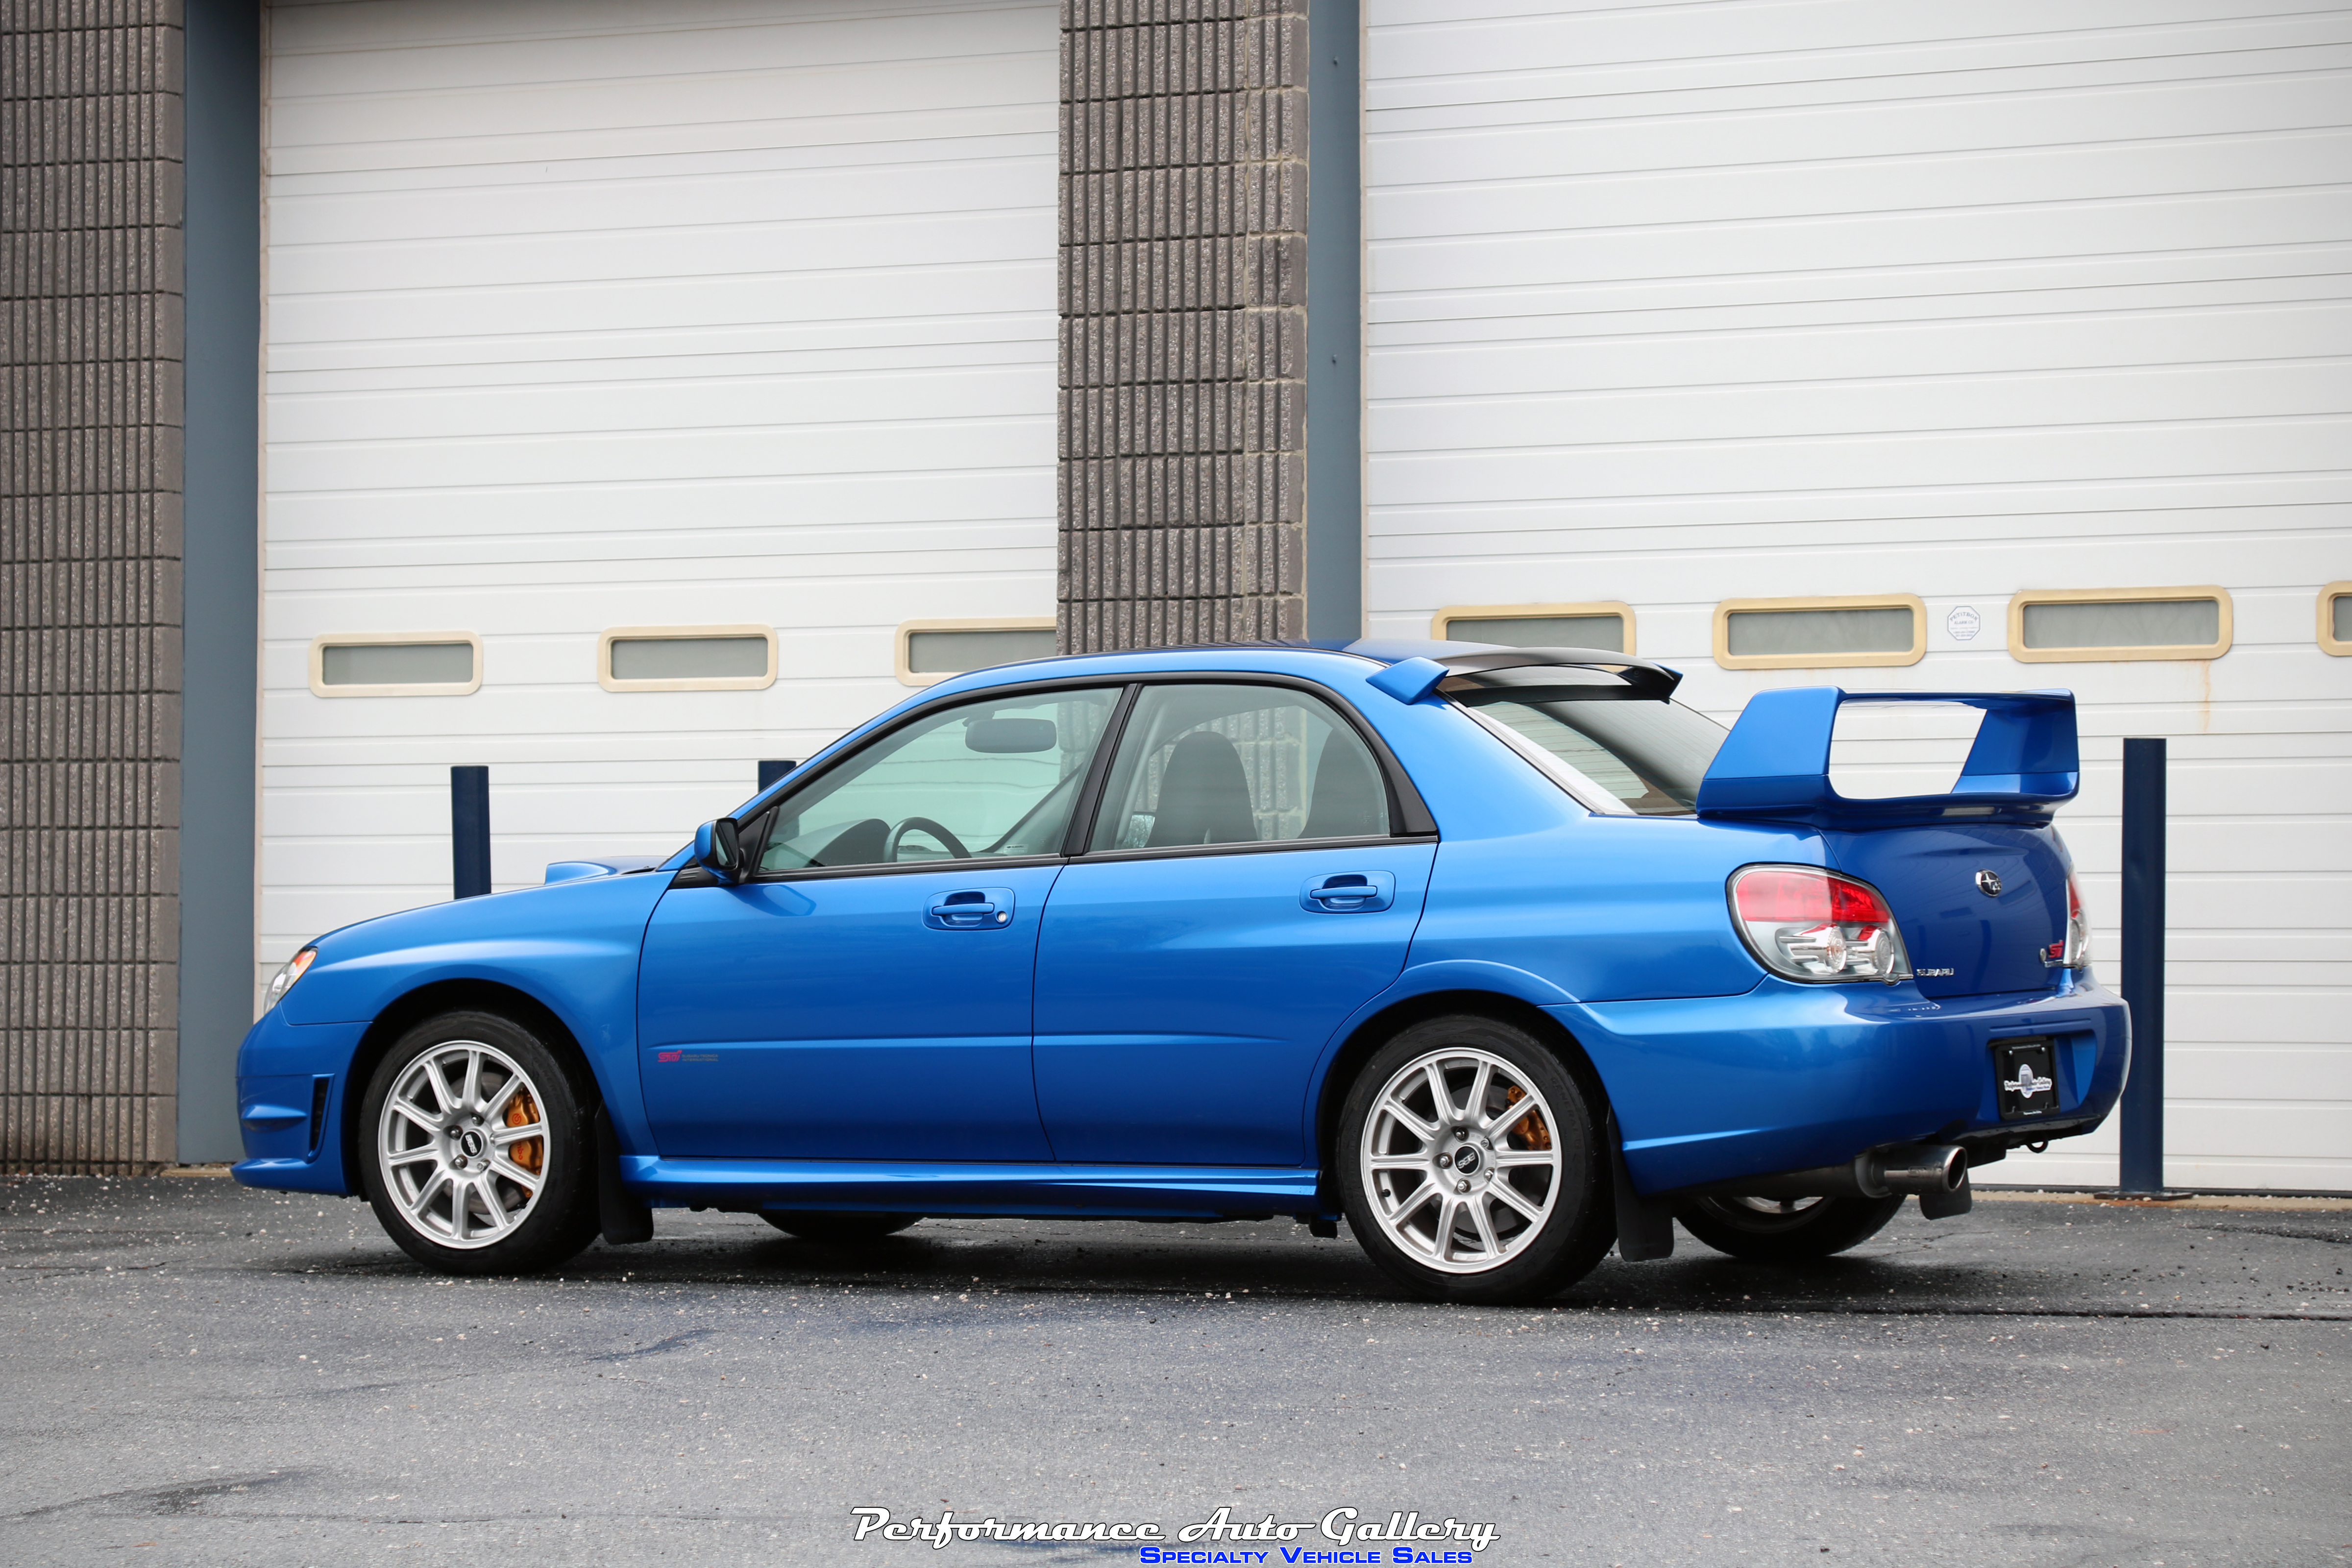 new arrival 2006 sti in world rally blue for sale with 52k miles. Black Bedroom Furniture Sets. Home Design Ideas